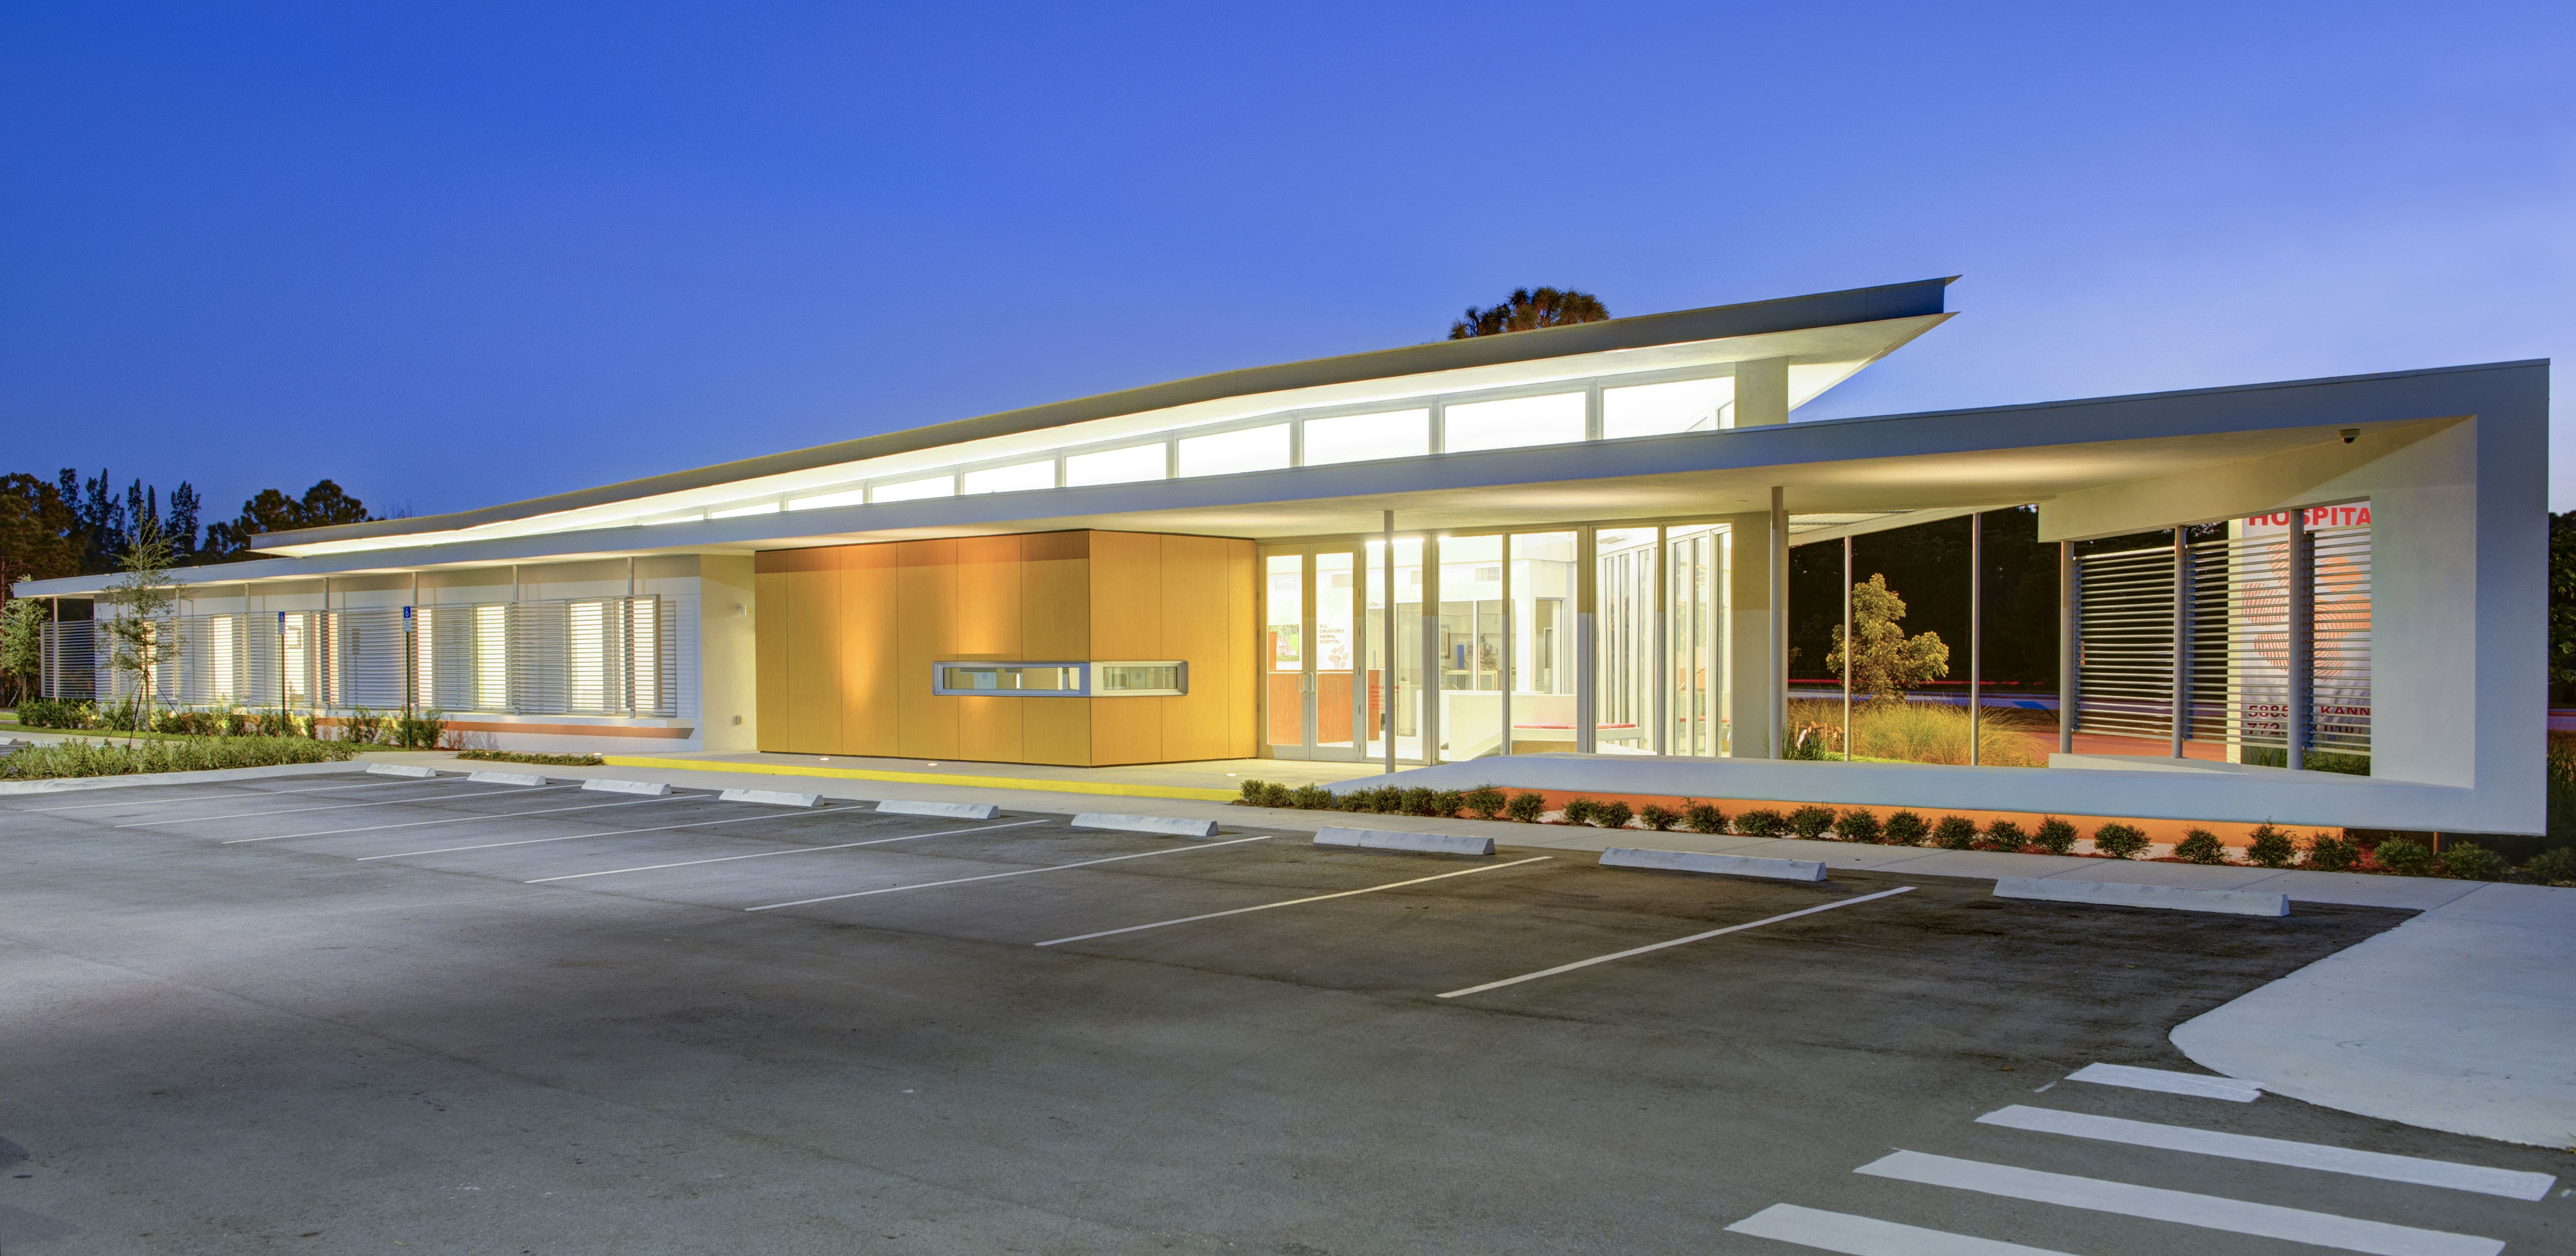 Animal Hospital Florida Clint Larkan Architect Veterinaria Hospital